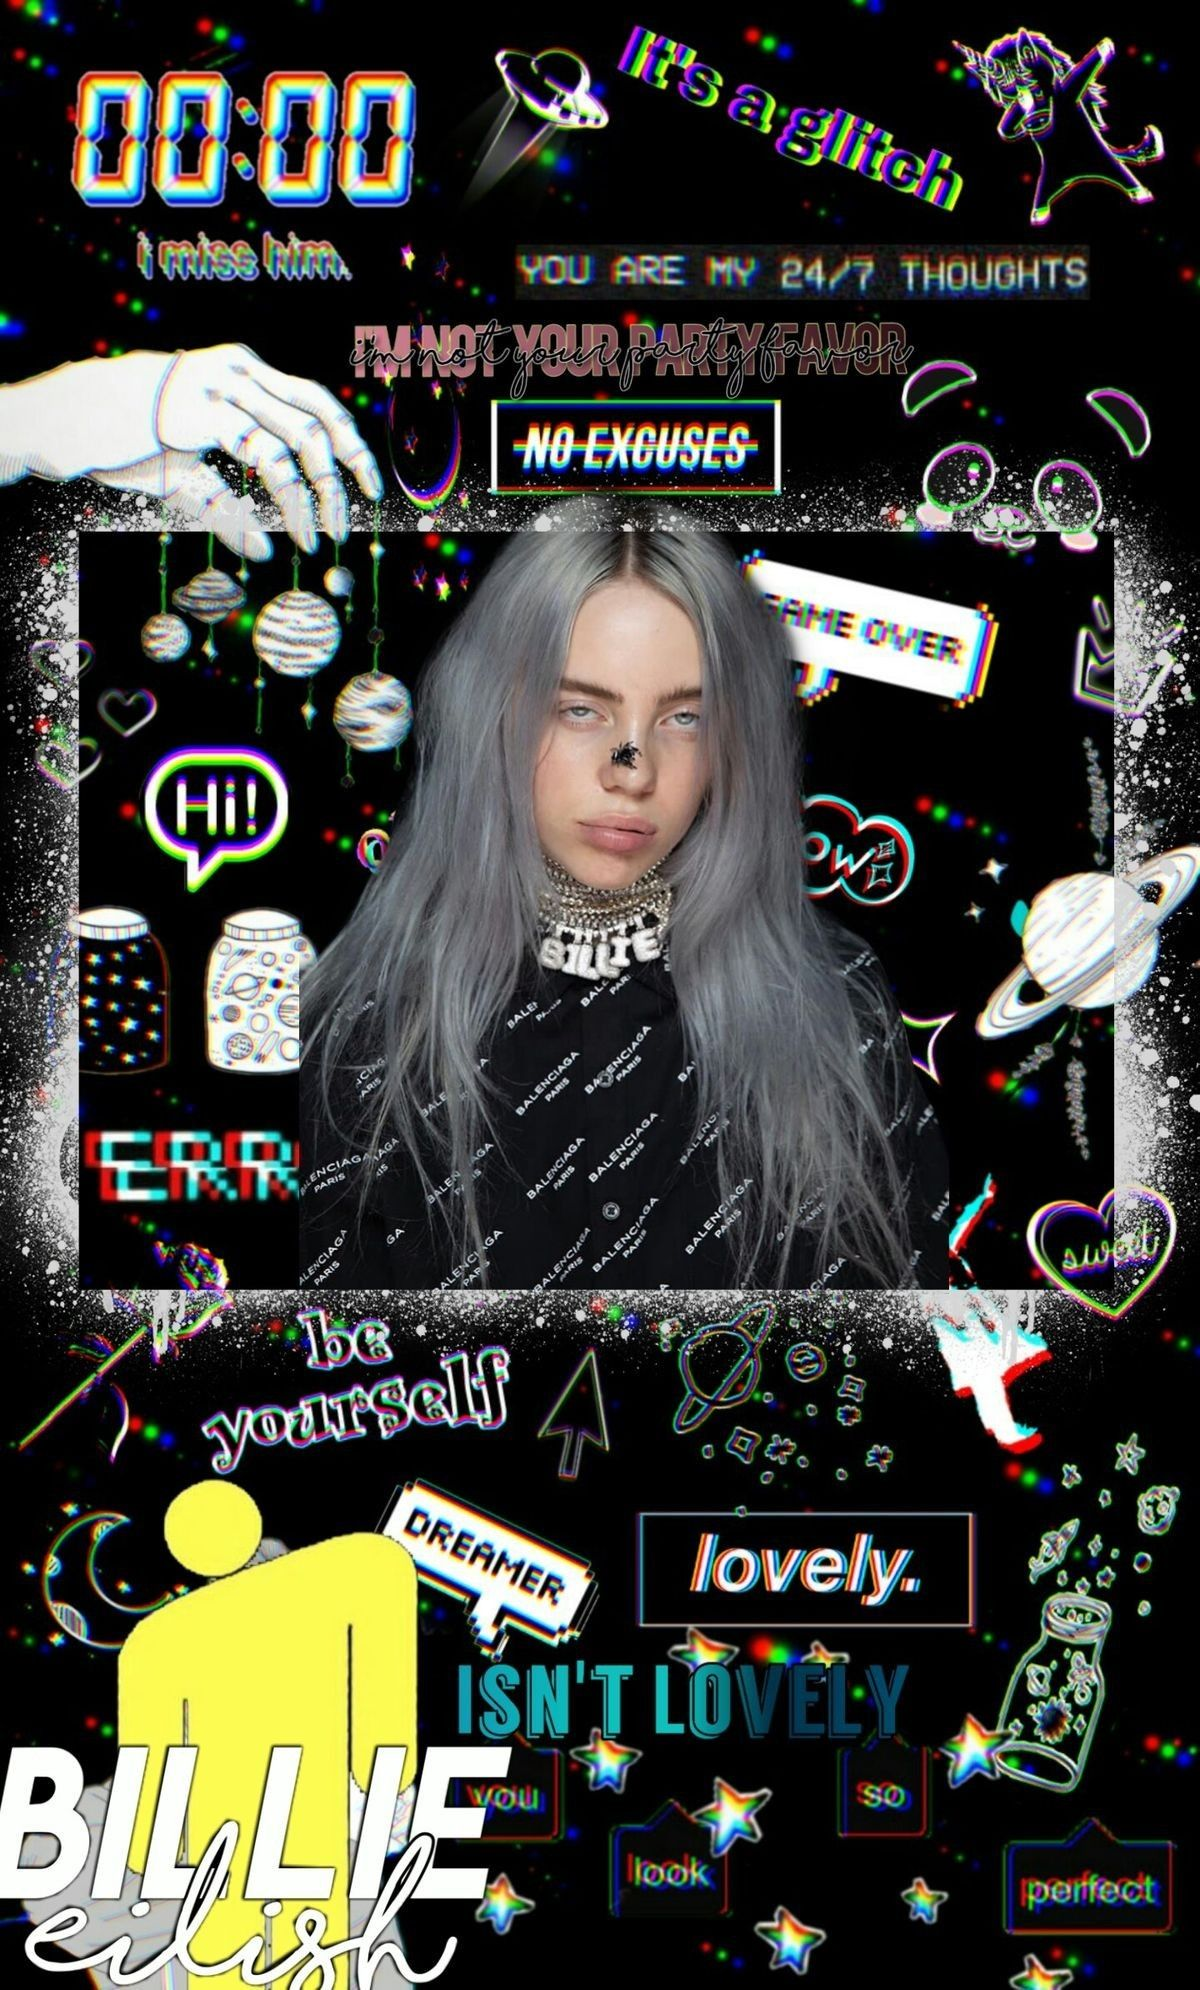 Black Wallpaper Billie Billie Eilish Iphone Wallpaper